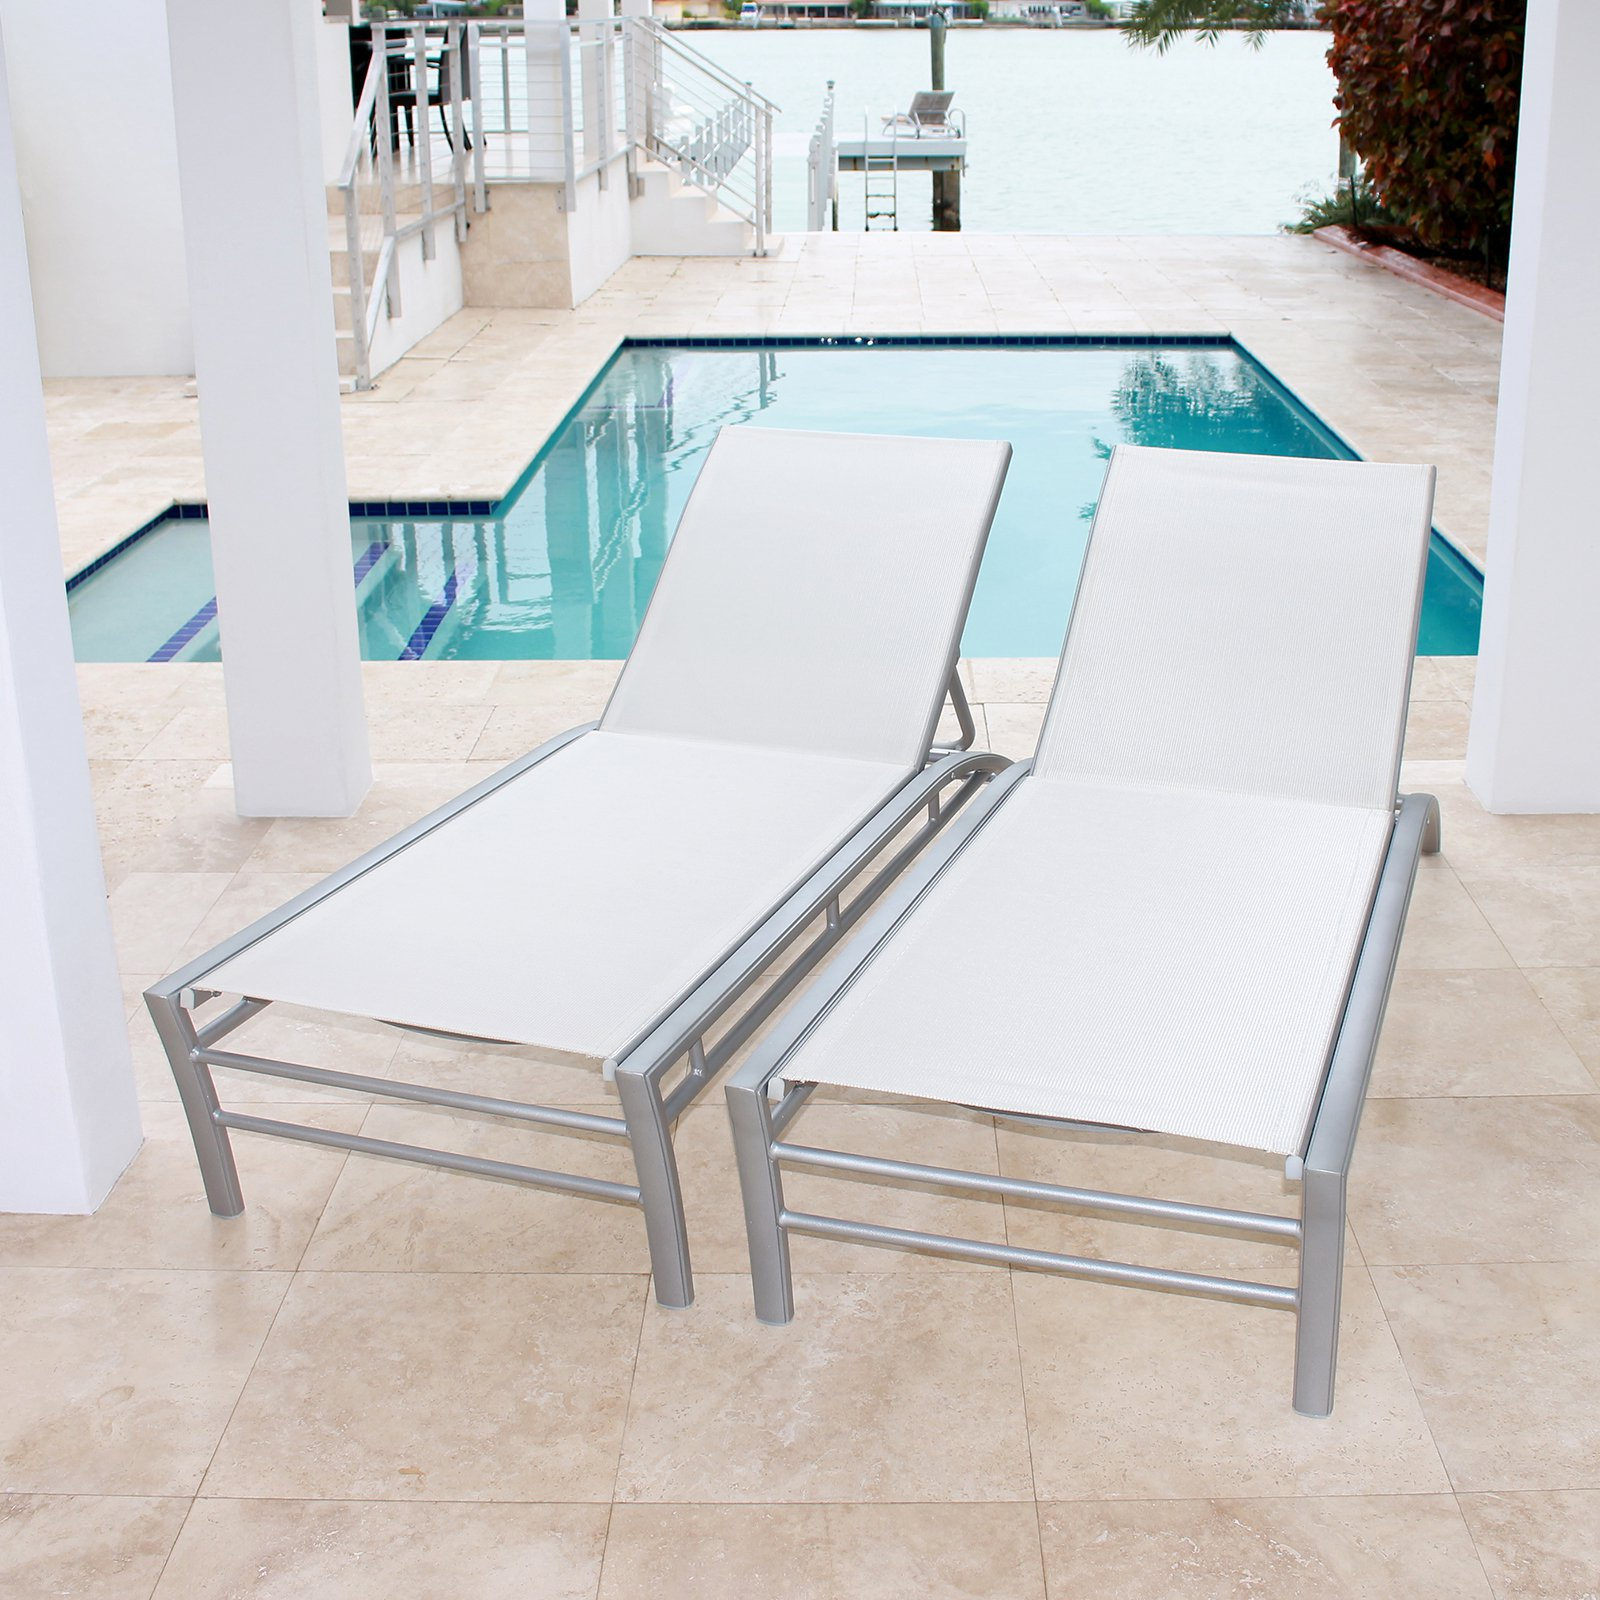 Infinita Pure Outdoor Chaise Lounge - Set of 2